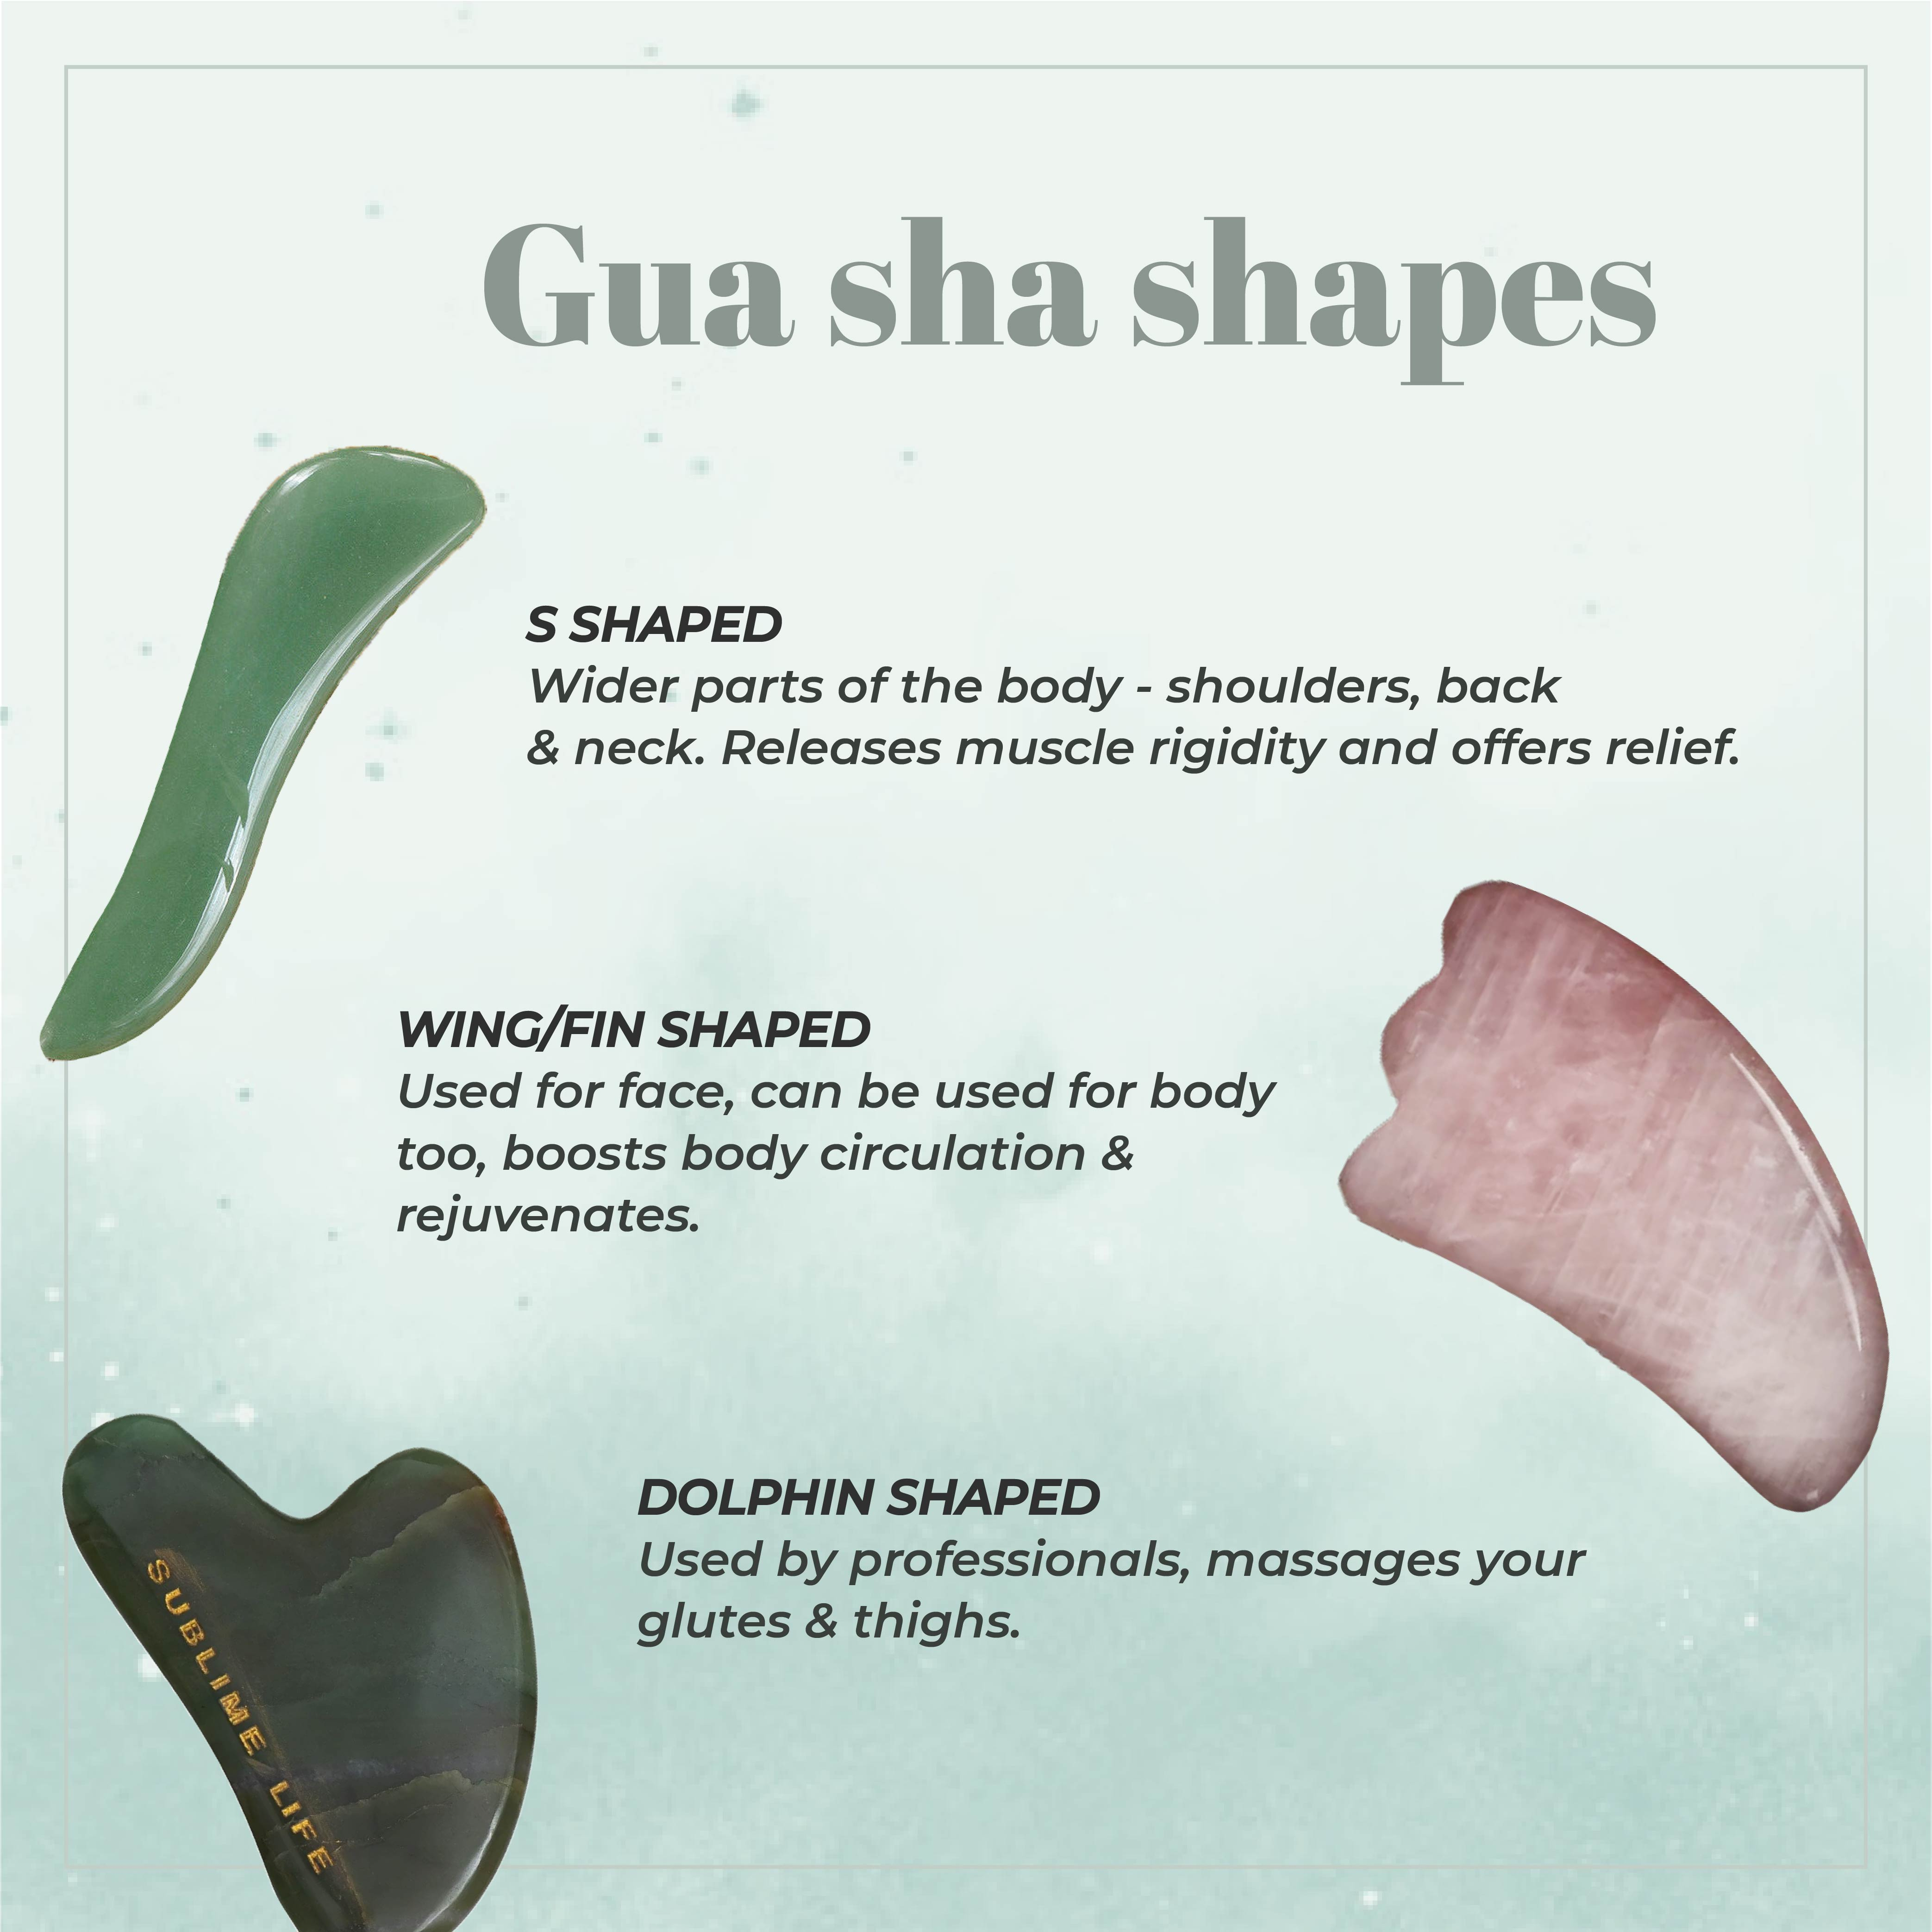 This is an image of the shapes of gua sha